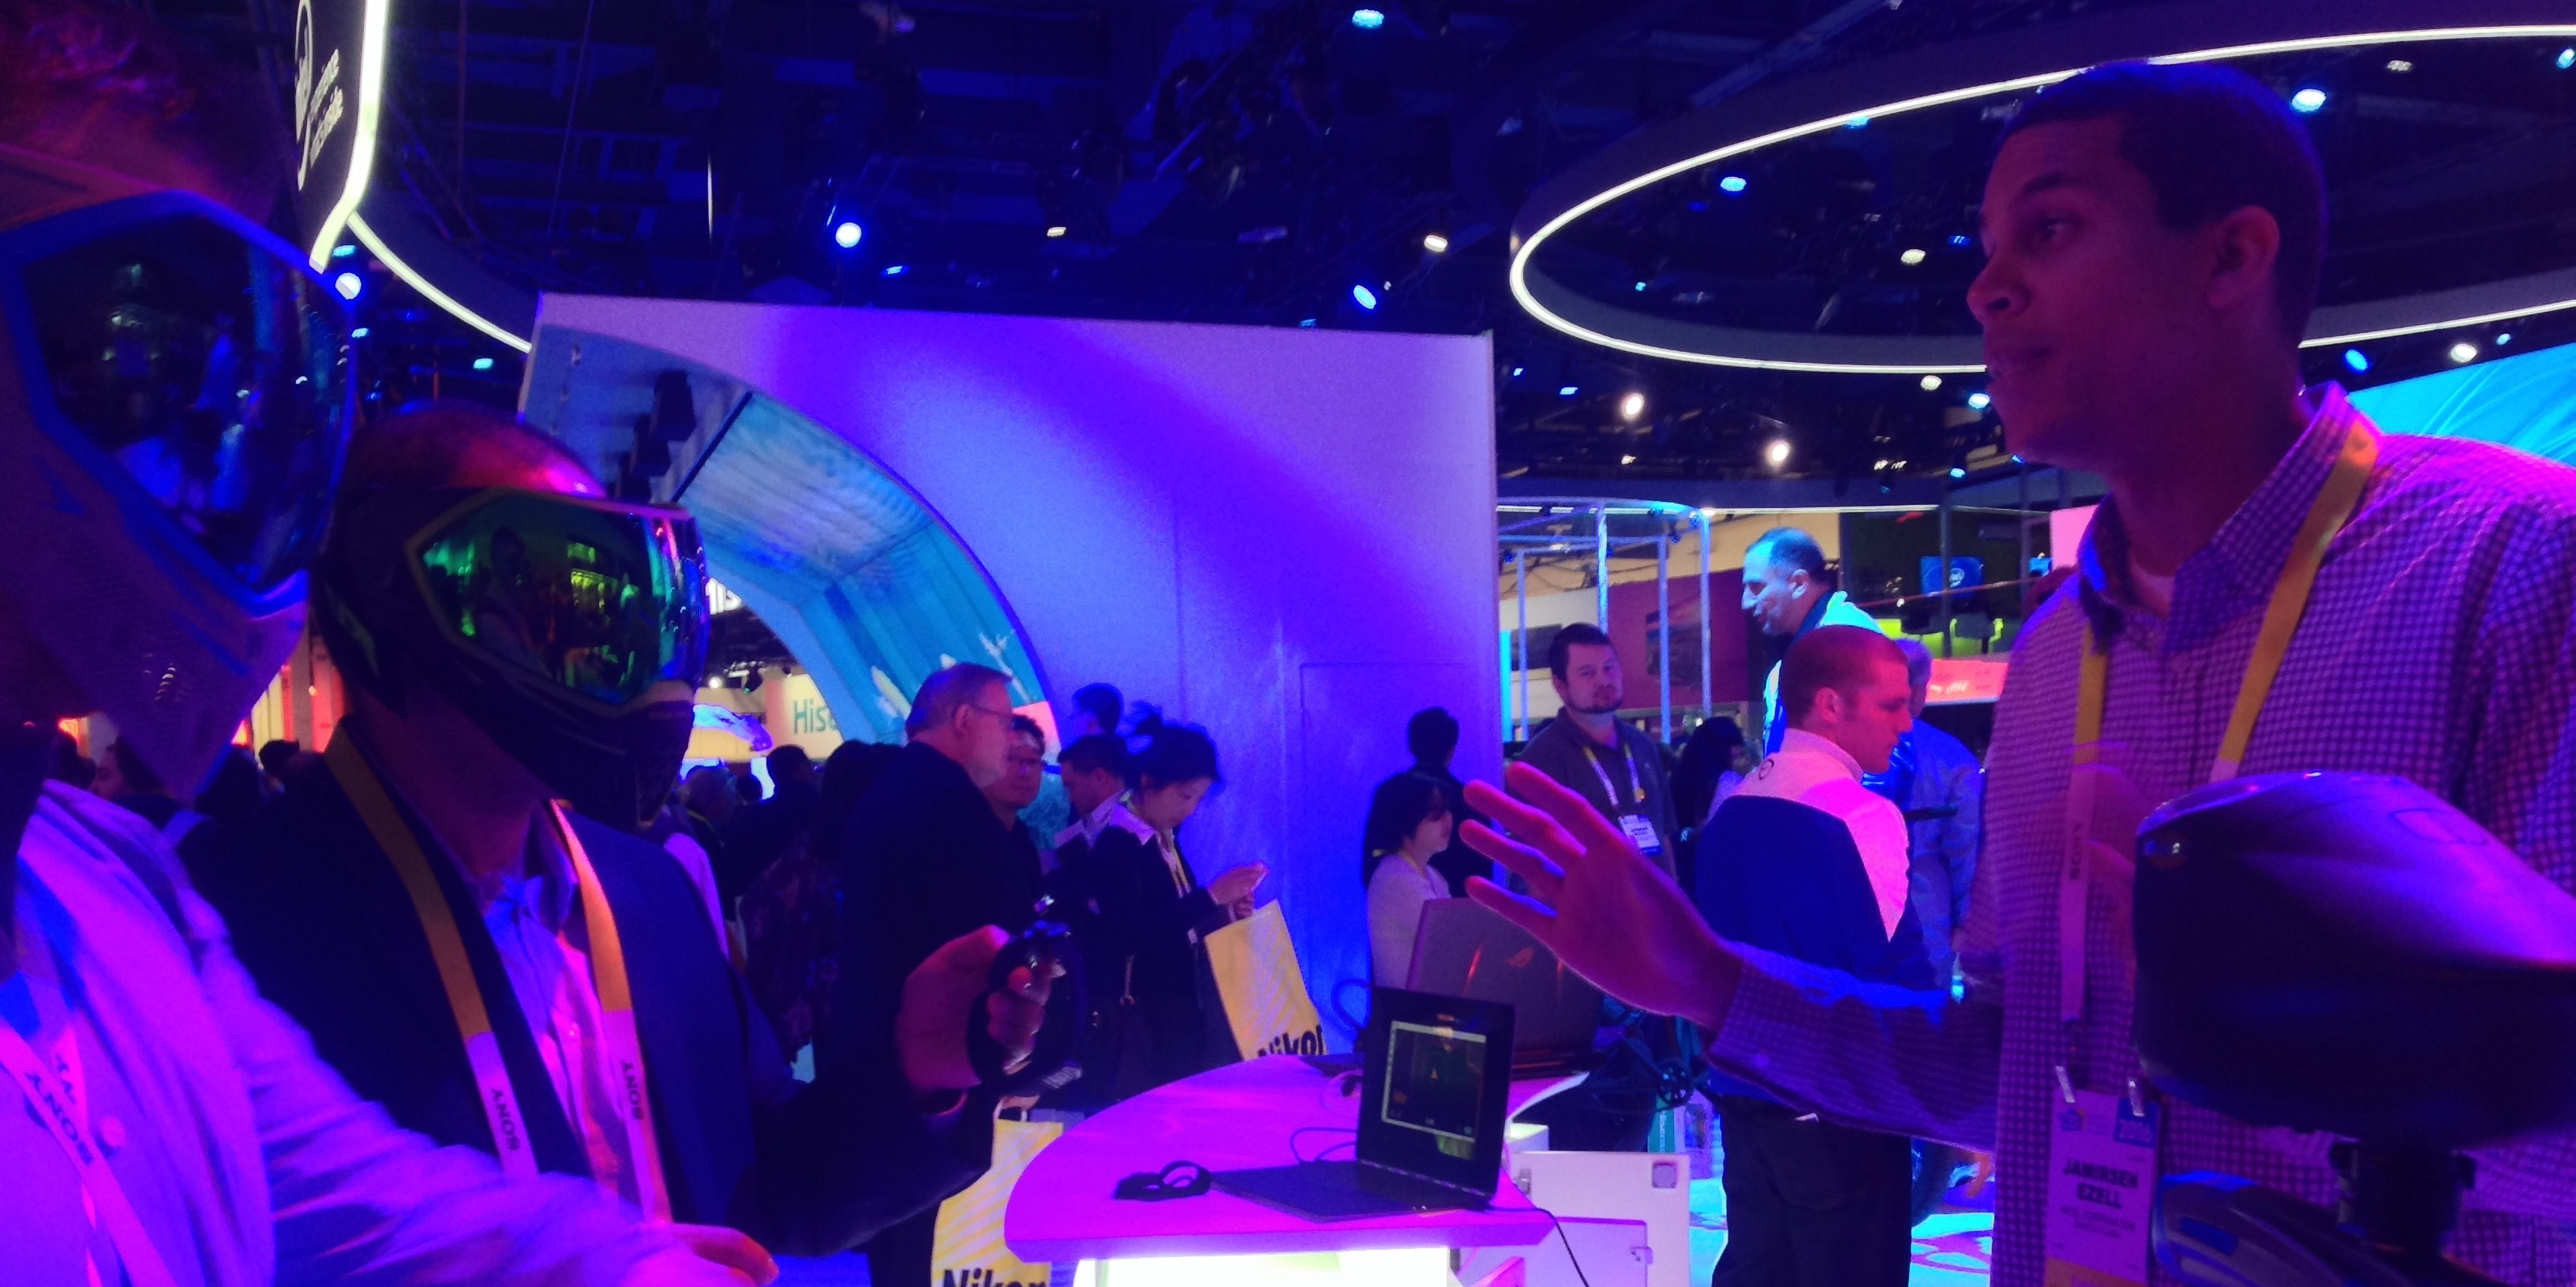 People in masks were actually a normal part of CES.